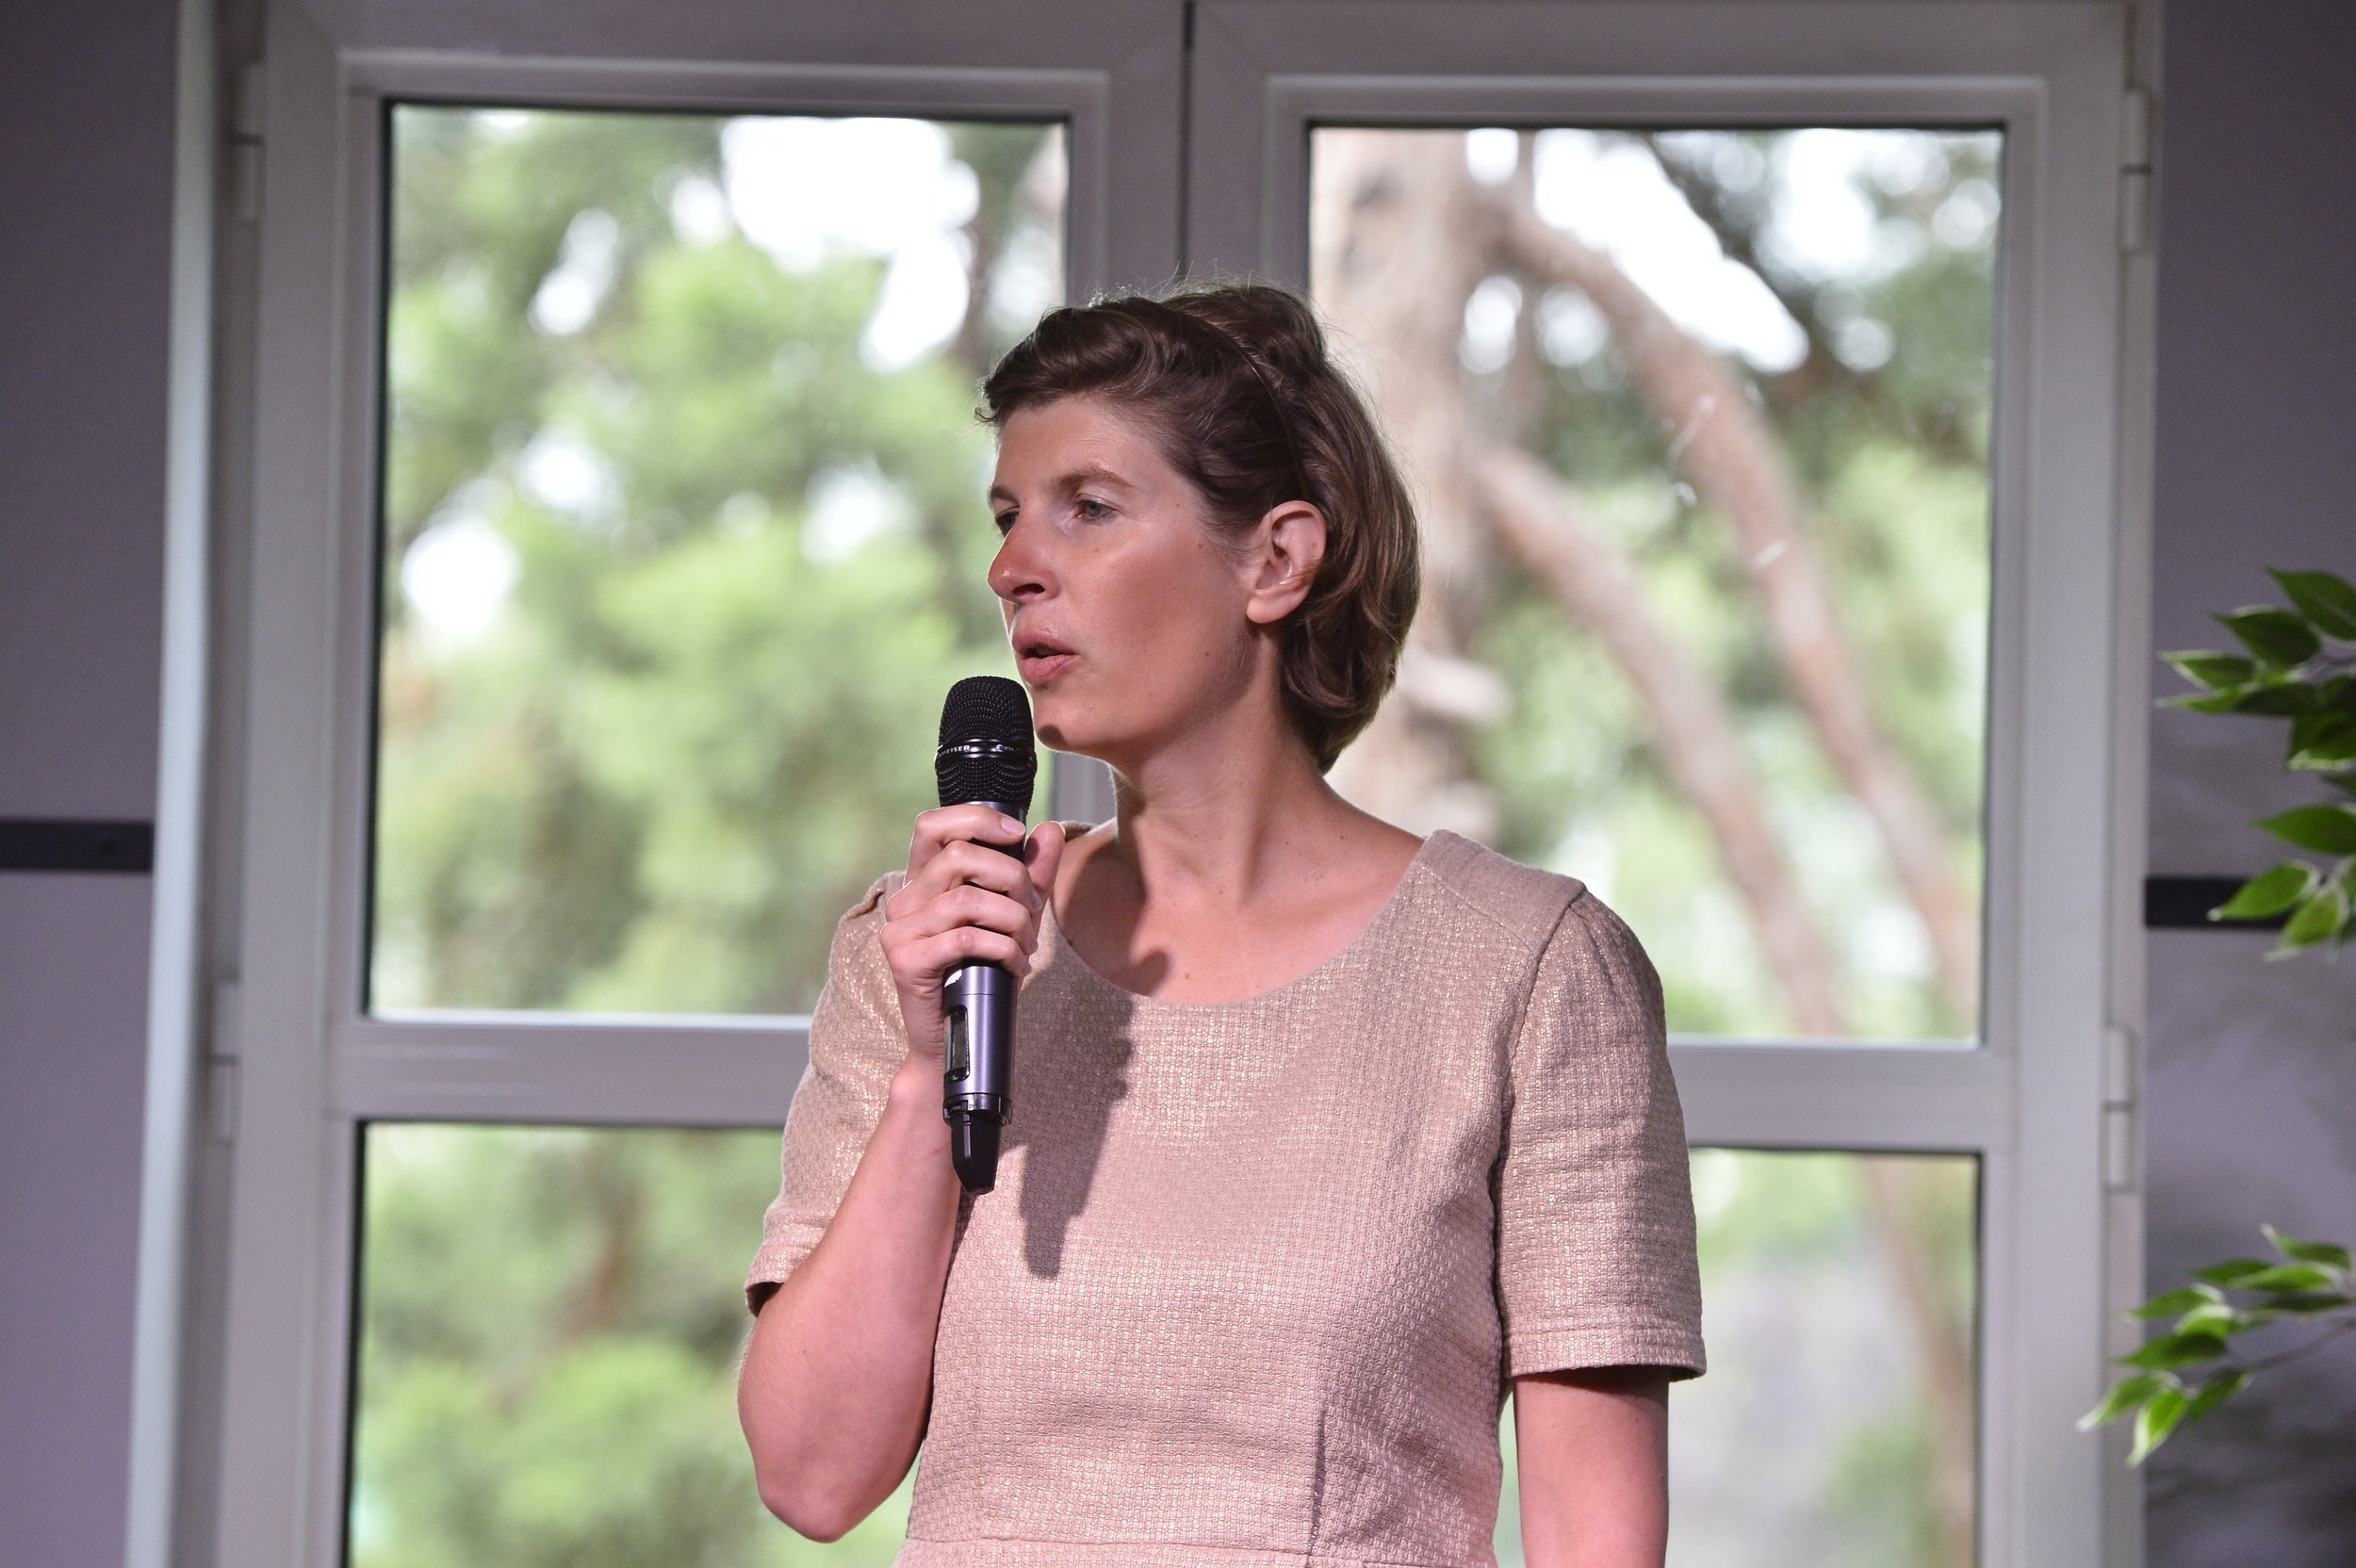 Caroline Brandao speaking about the International Humanitarian Law at the Boma France Campfire. Credit: Boma France